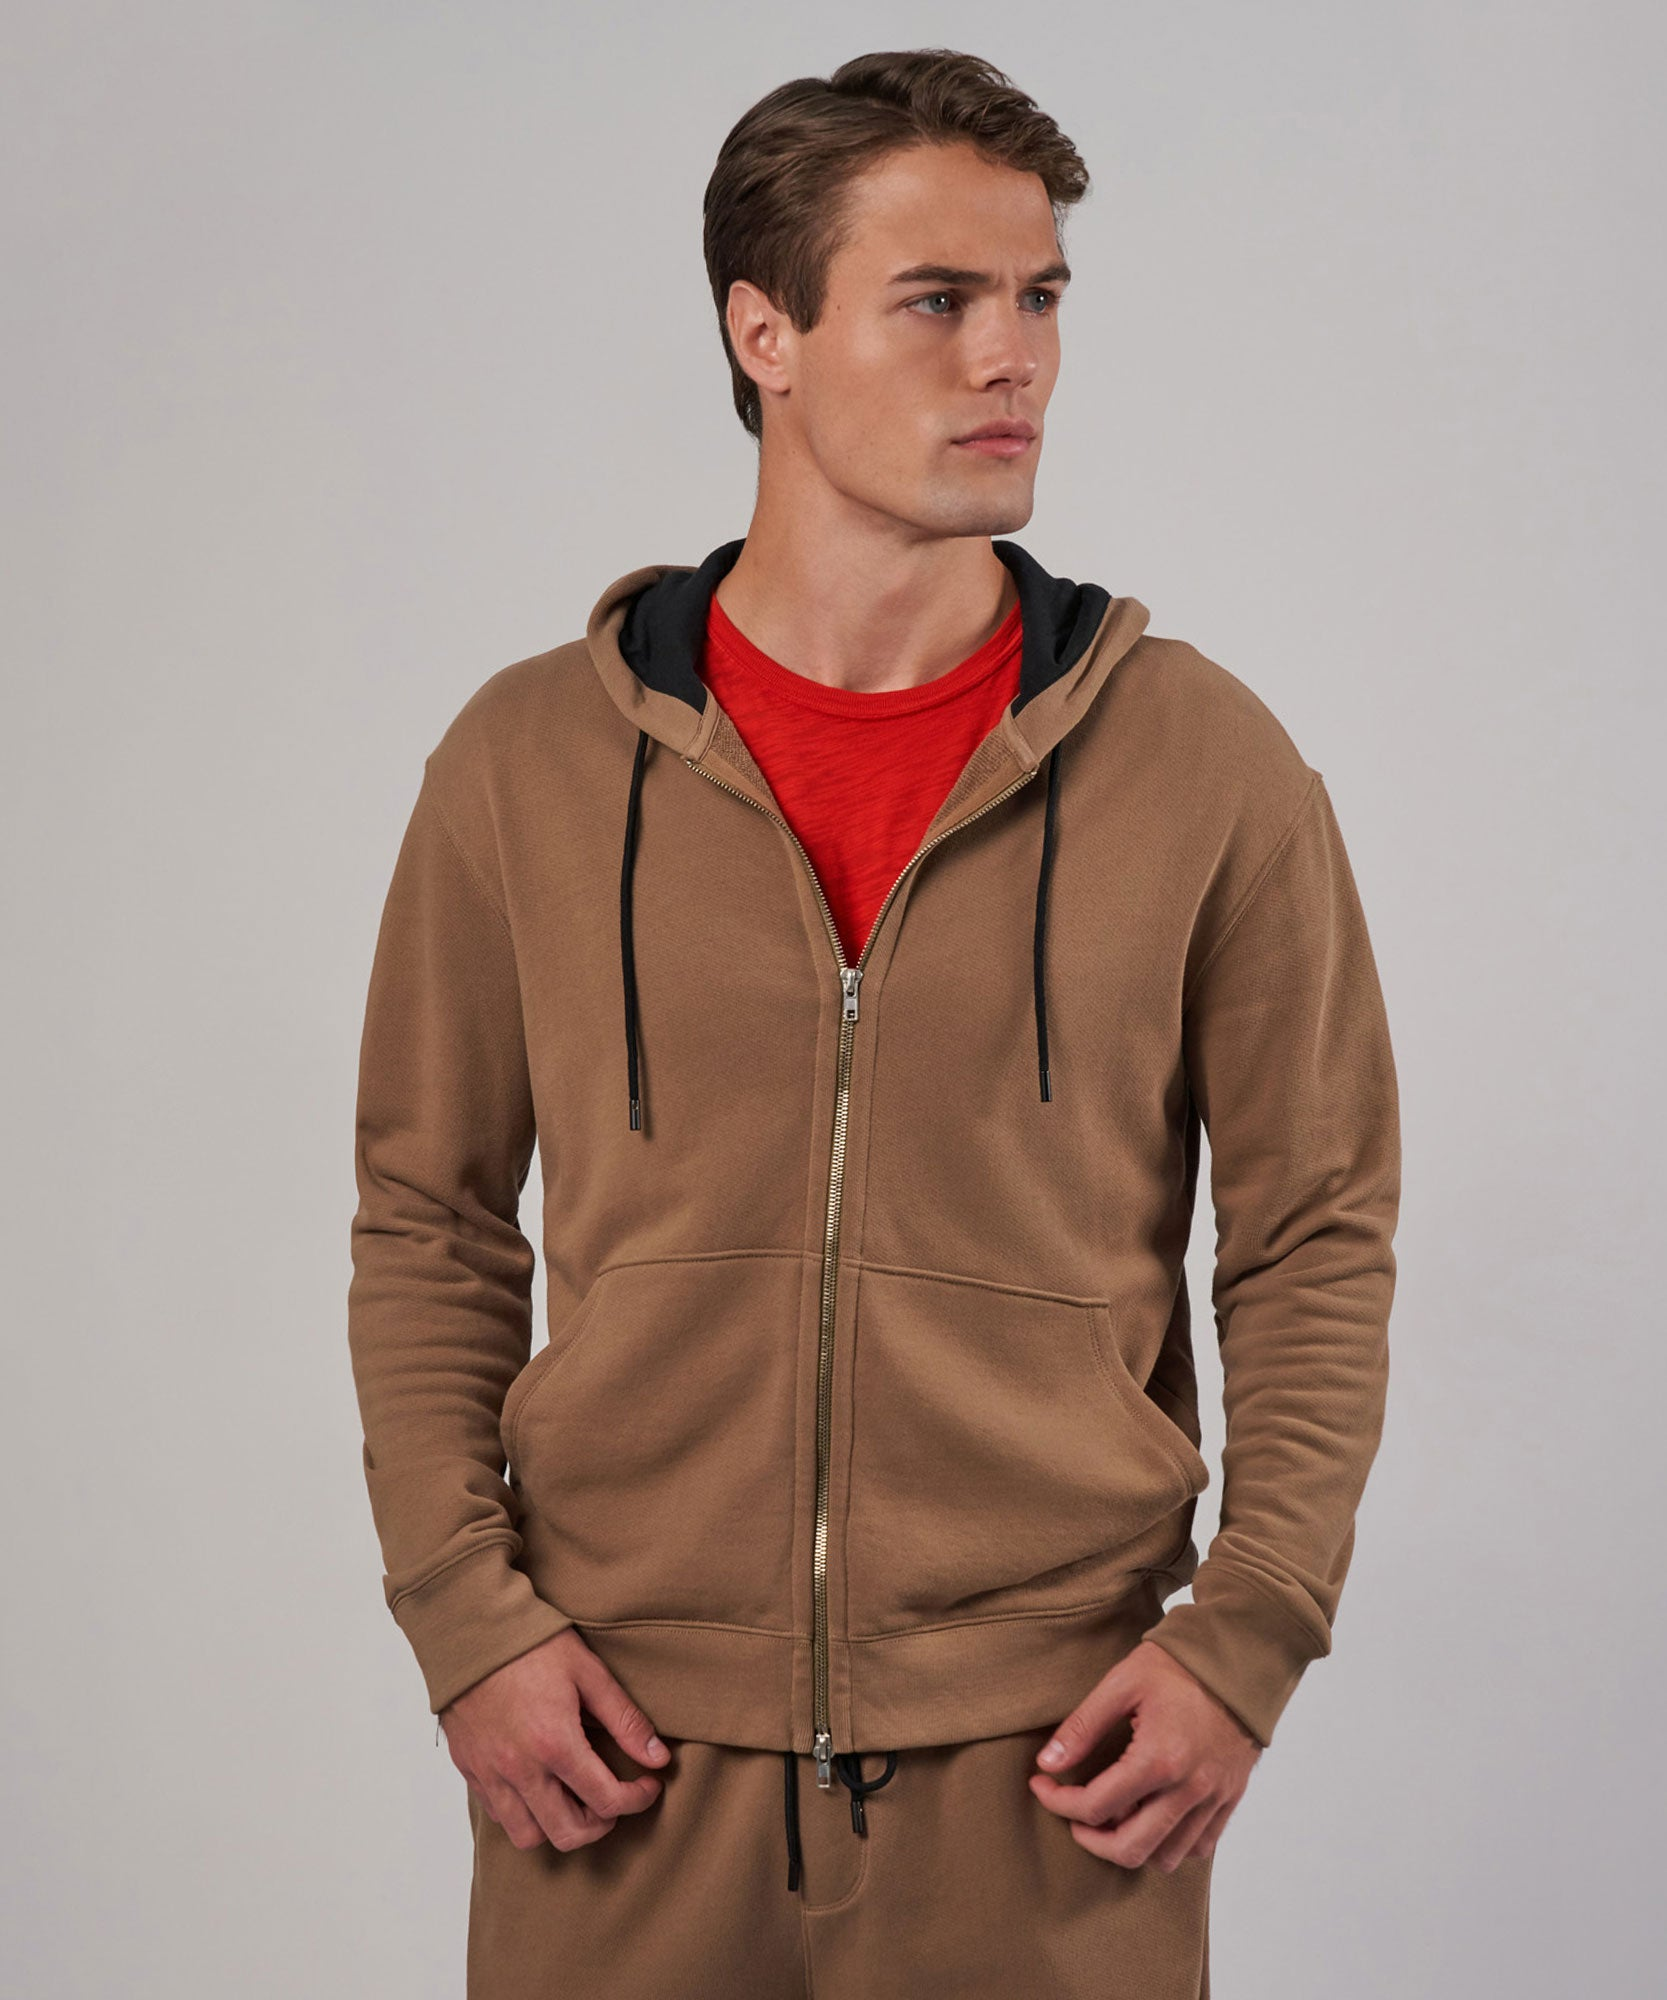 Sahara French Terry Double Zip-Up Hoodie - Men's Luxe Loungewear by ATM Anthony Thomas Melillo